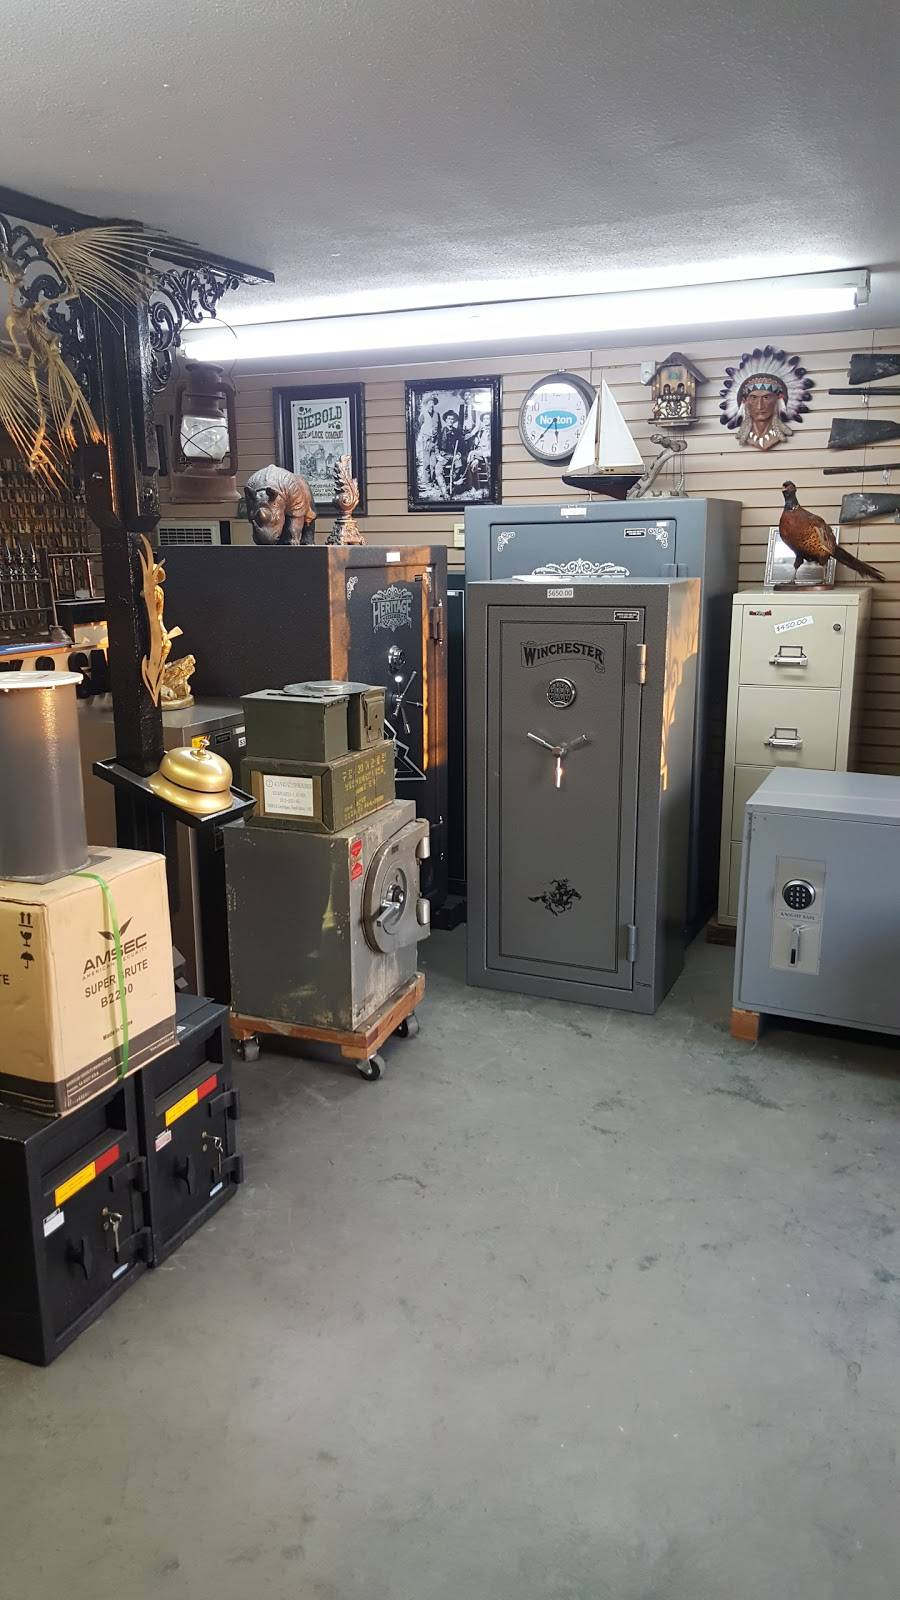 Outlaw Safe Company - store  | Photo 8 of 10 | Address: 1230 S Beach Blvd, Anaheim, CA 92804, USA | Phone: (714) 826-4275